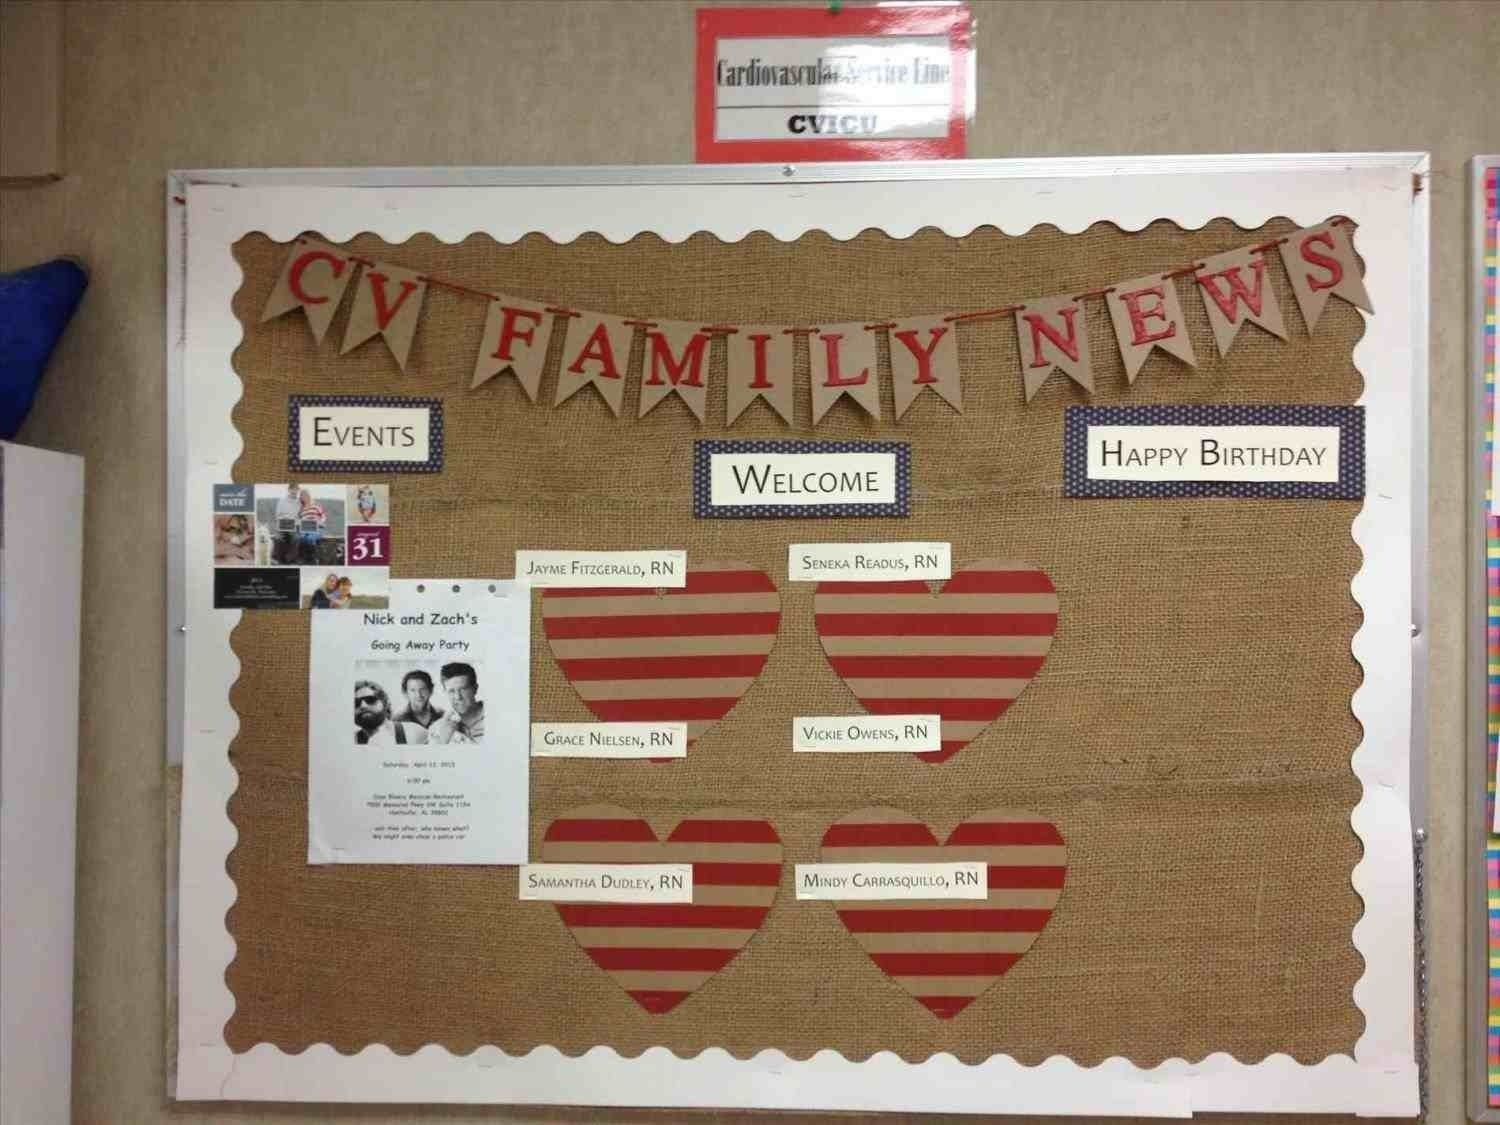 10 Stylish Bulletin Board Ideas For Work the images collection of pinterest tips best spring ideas for 2020